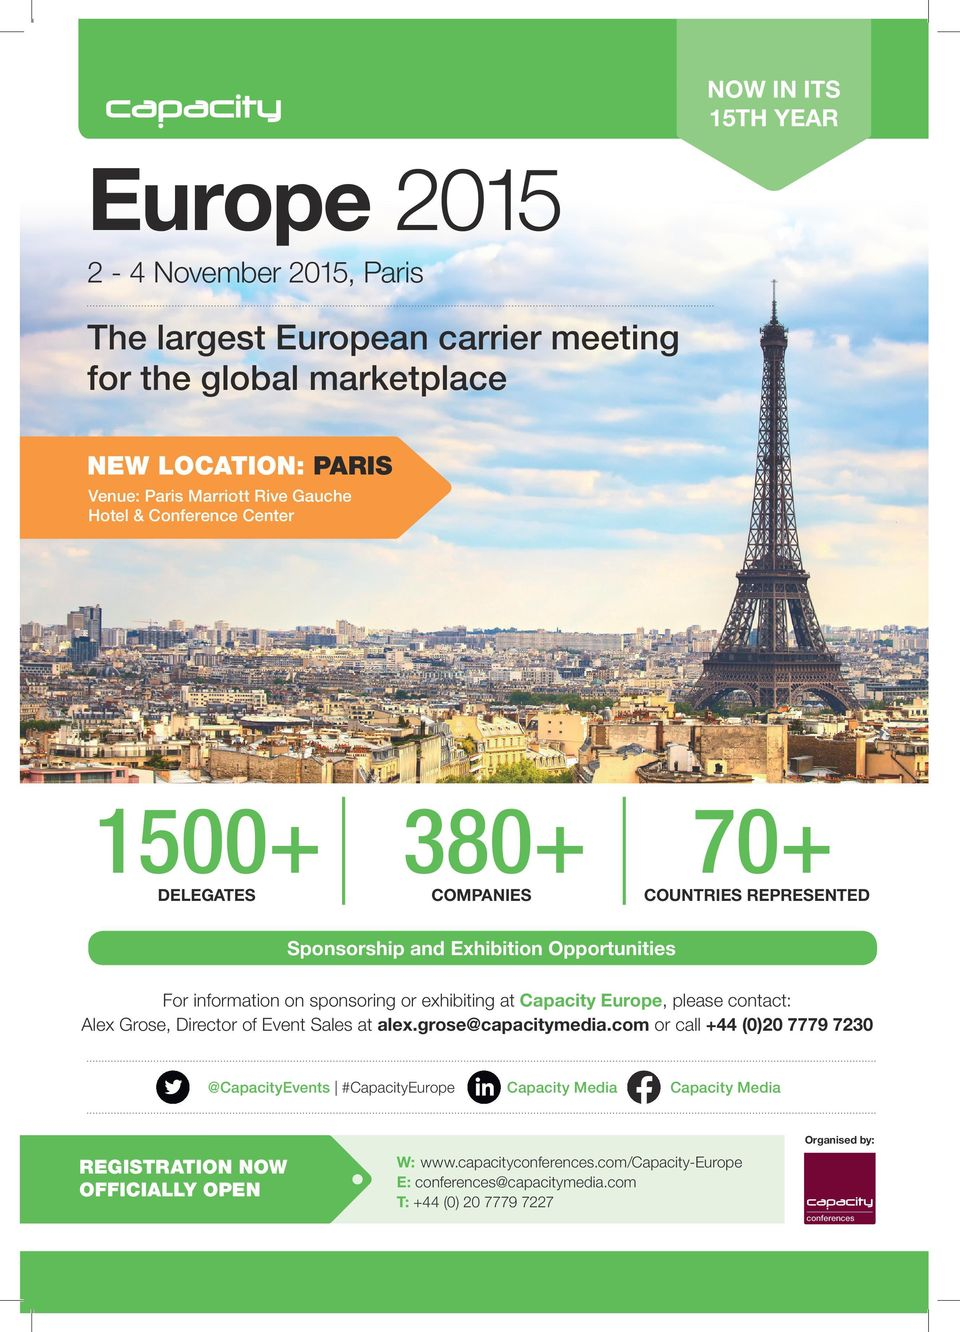 exhibiting at Capacity Europe, please contact: Alex Grose, Director of Event Sales at alex.grose@capacitymedia.